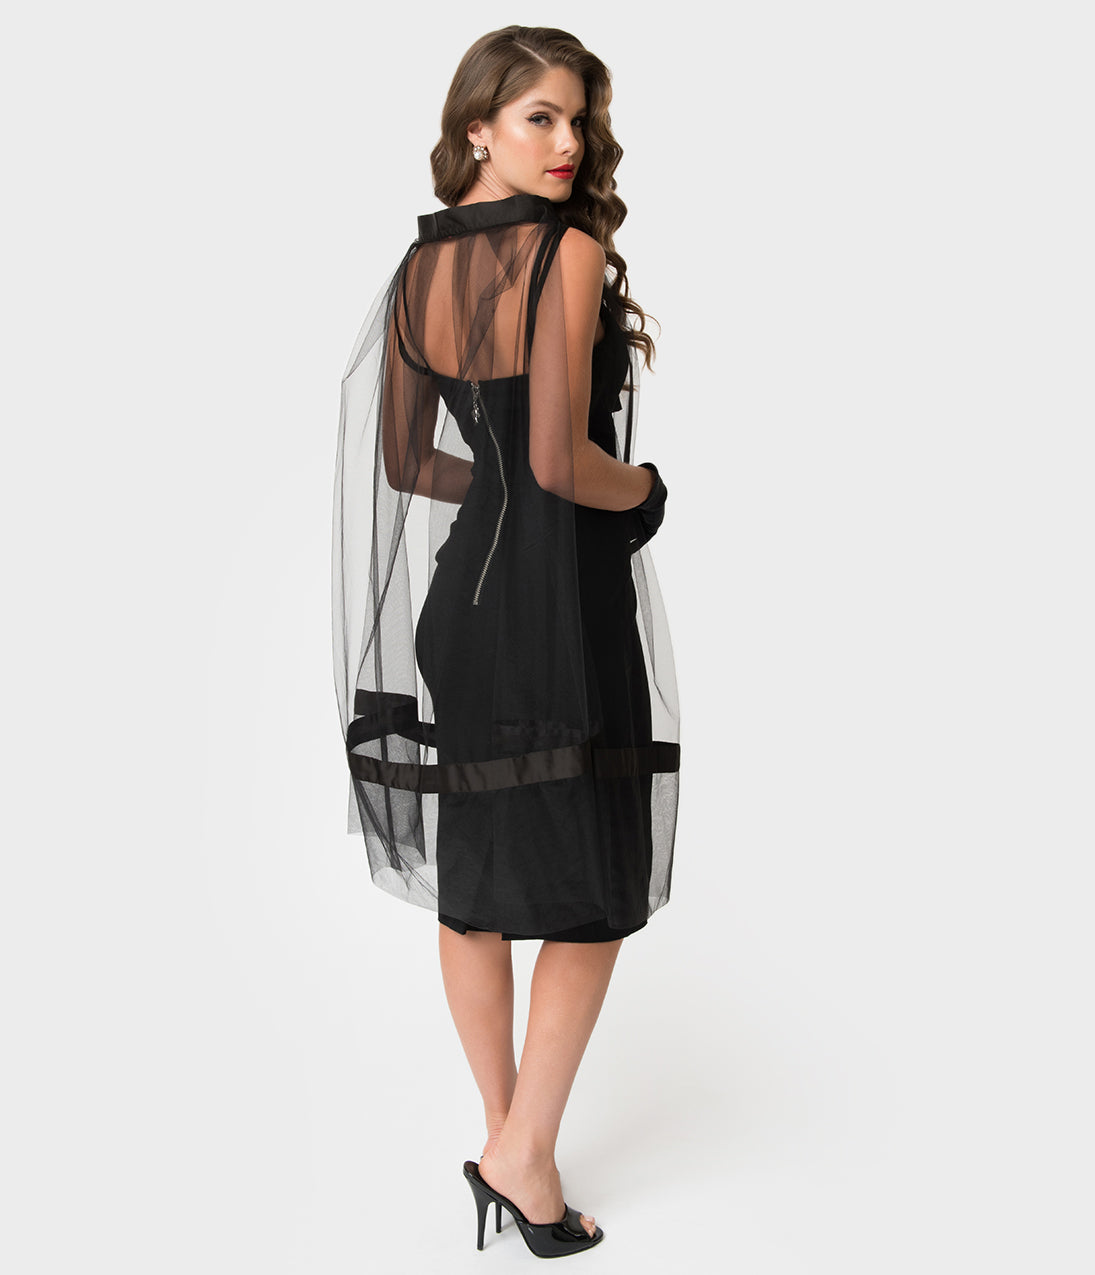 Cocktail Dress Outfits